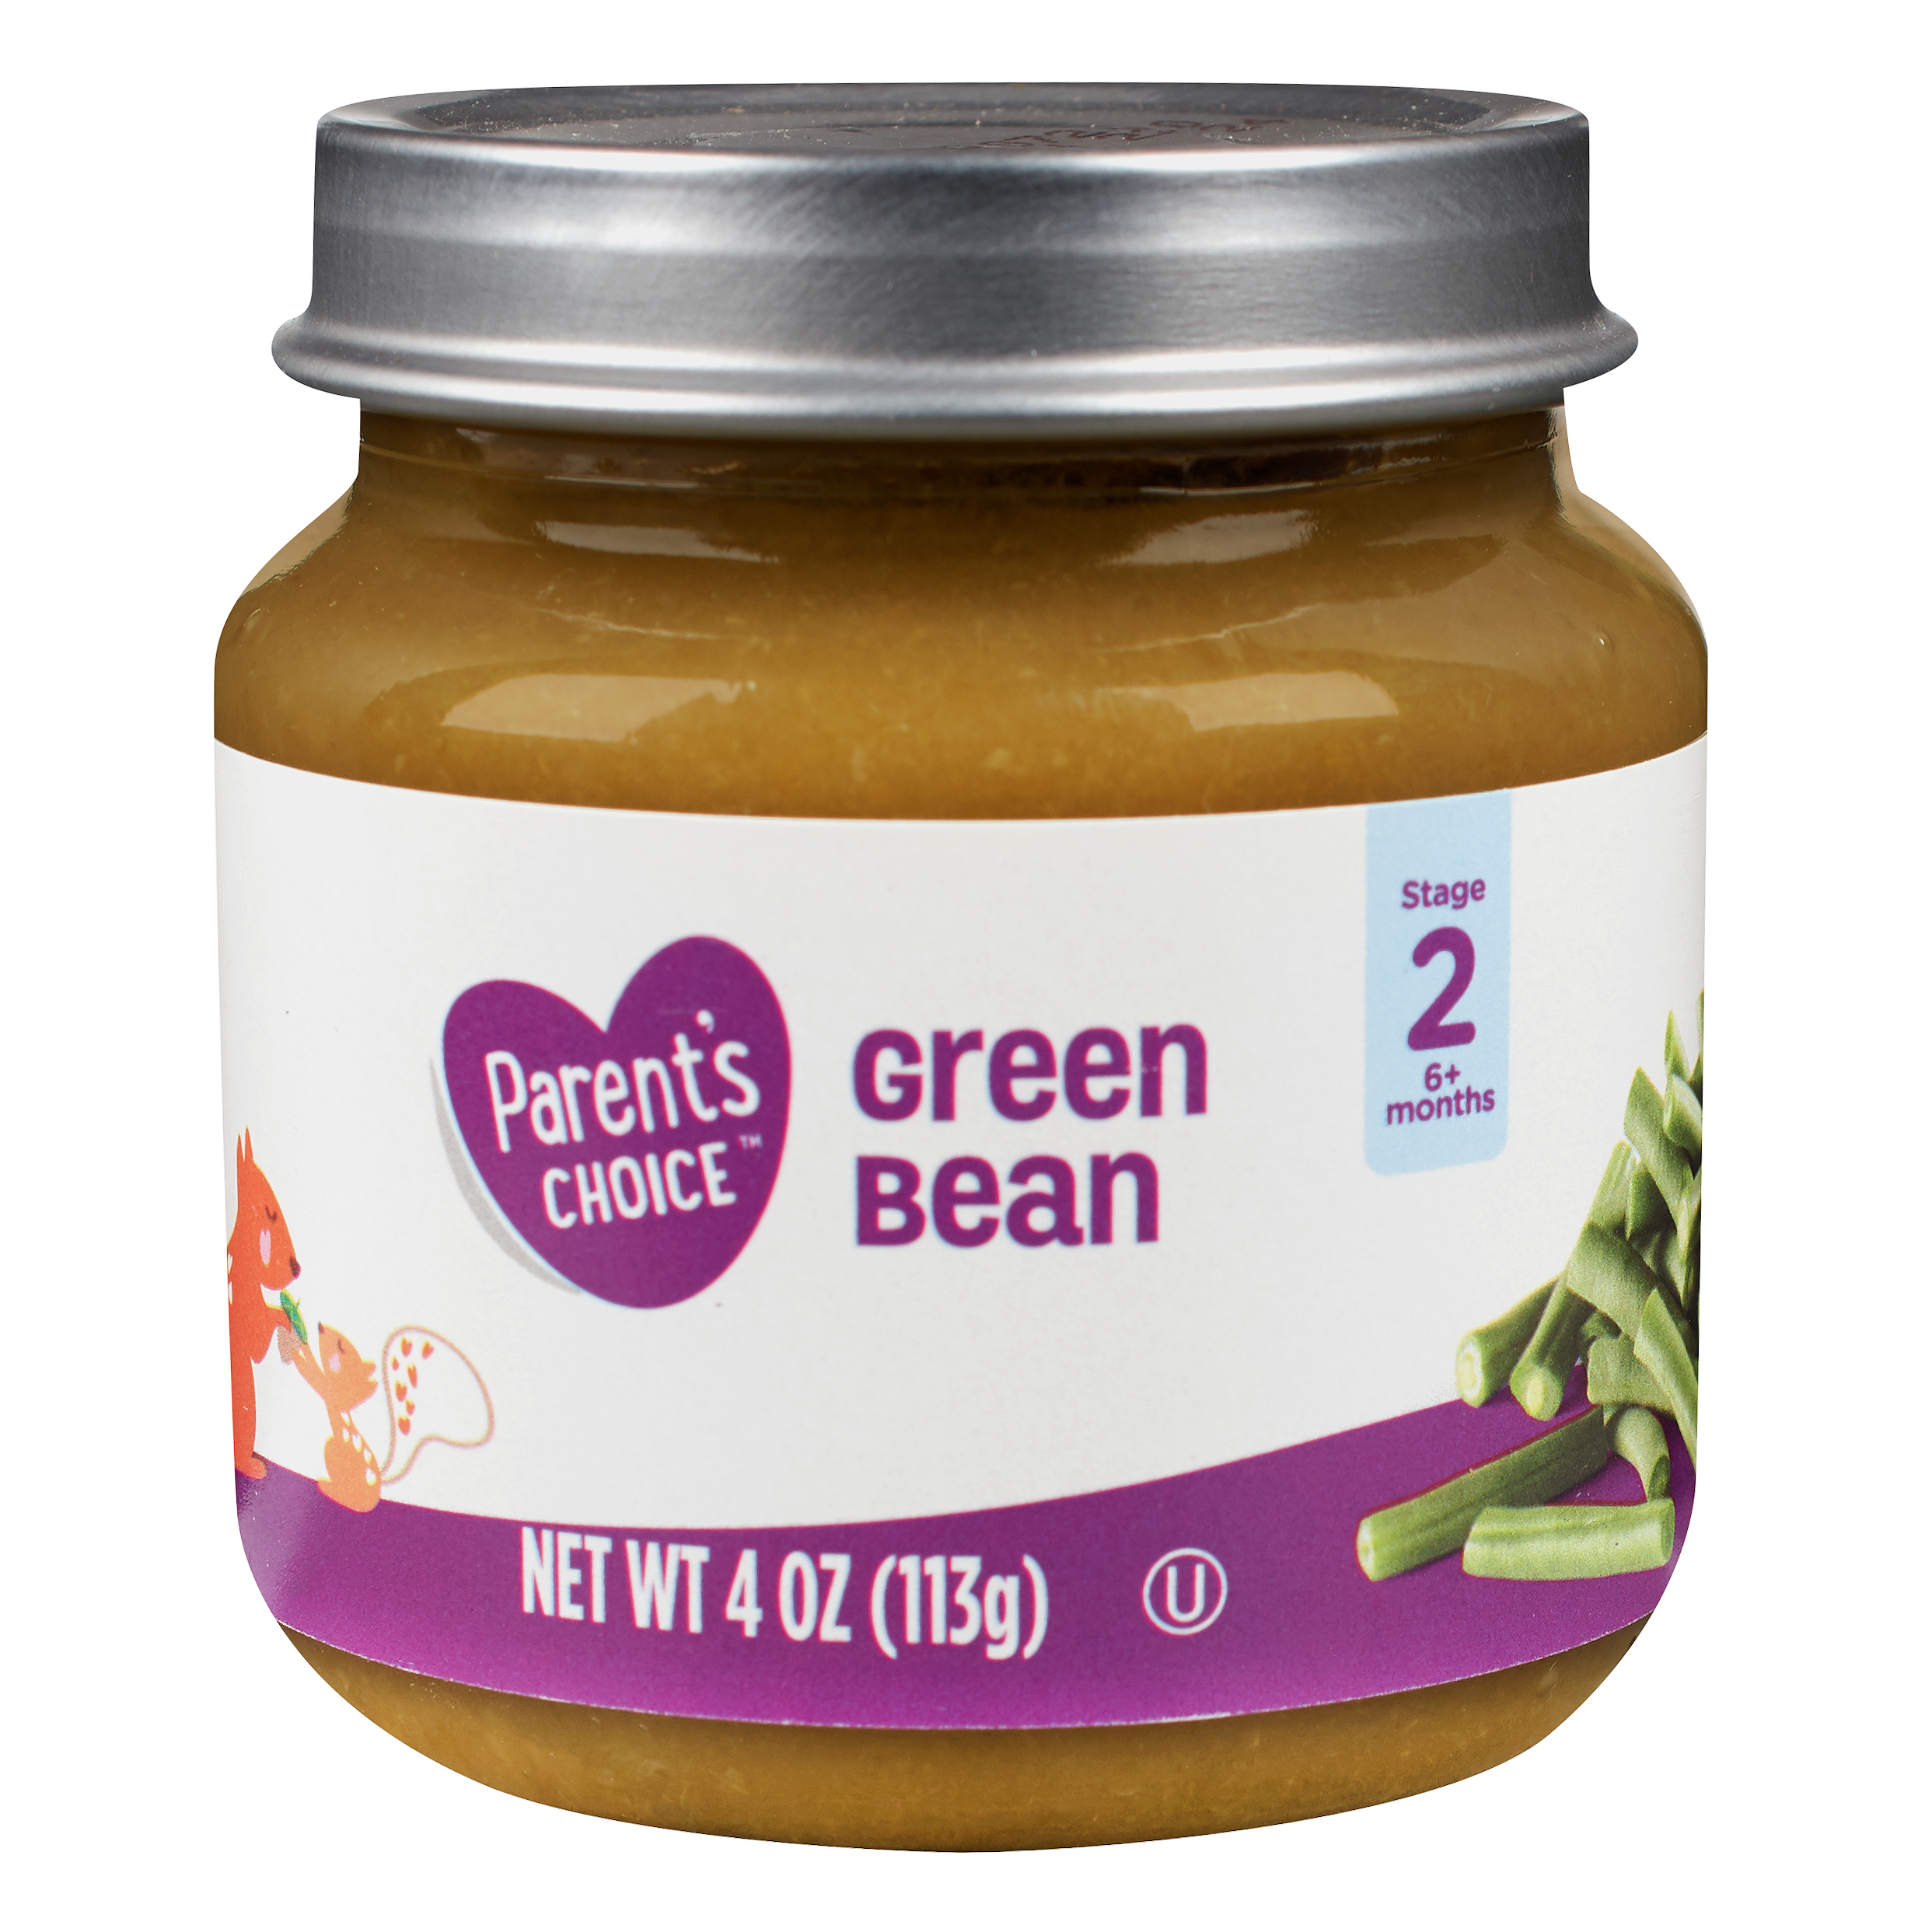 Parent's Choice Baby Food, Green Beans, Stage 2, 4 oz